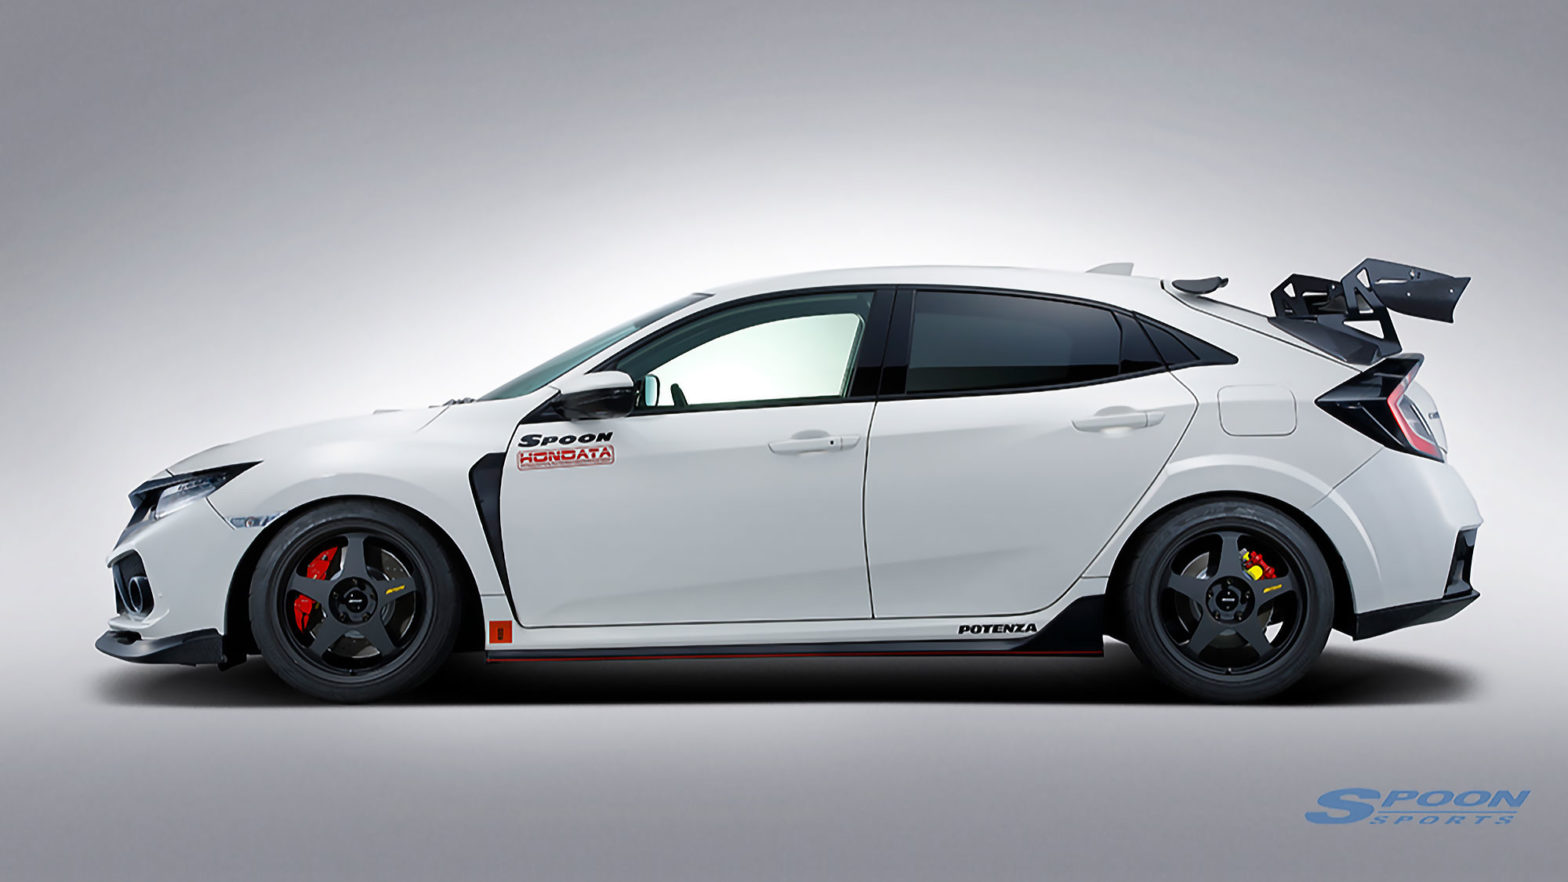 Spoon Sports FK8 Honda Civic Type R